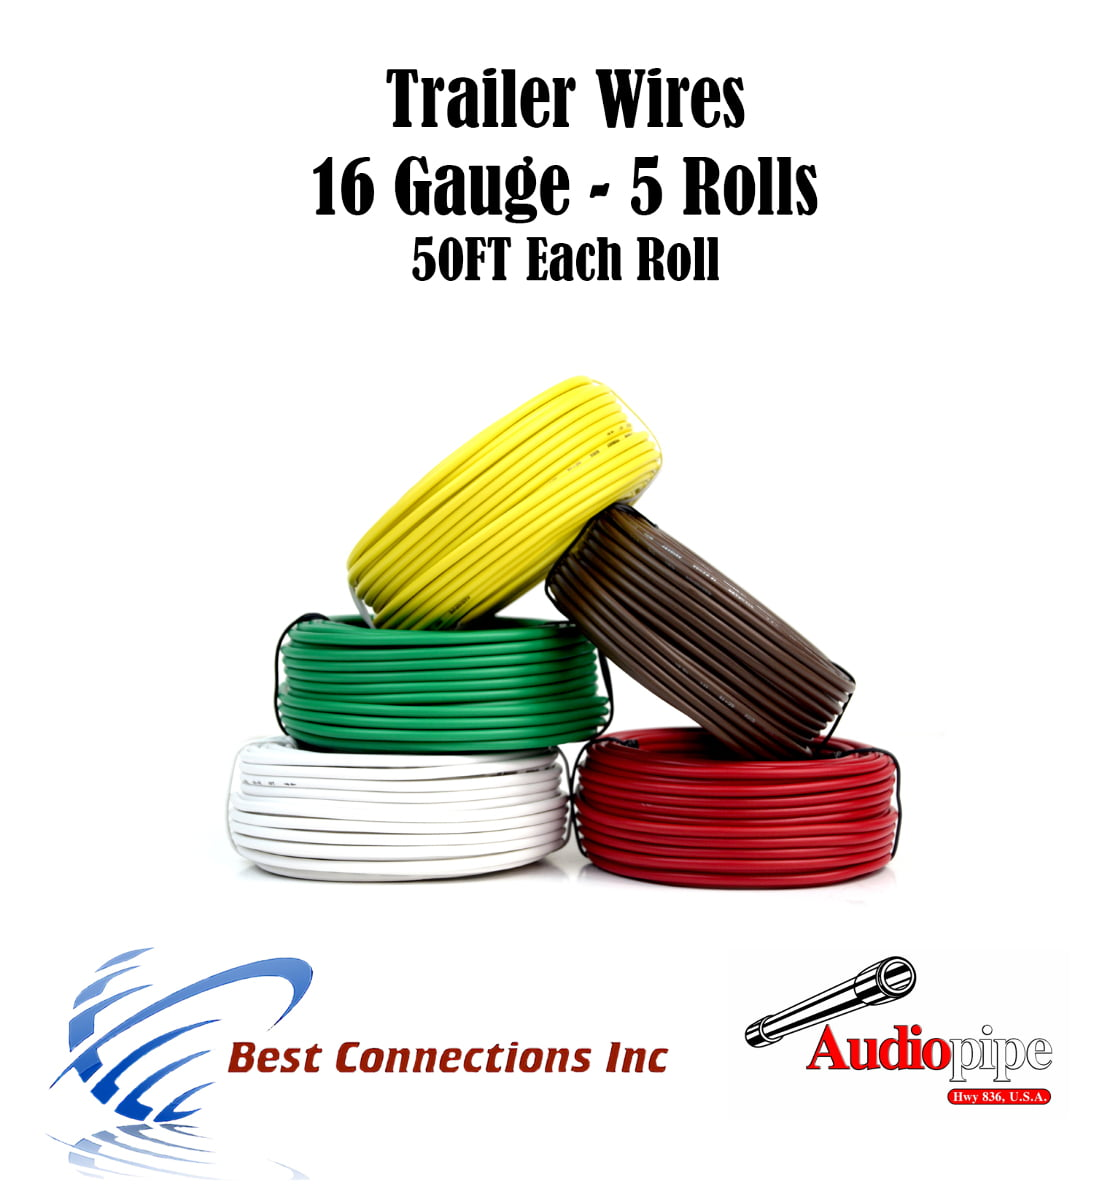 Trailer Light Harness Data Wiring Schema 5 Wire Way Cable For Led 50ft Each Roll 16 Tow